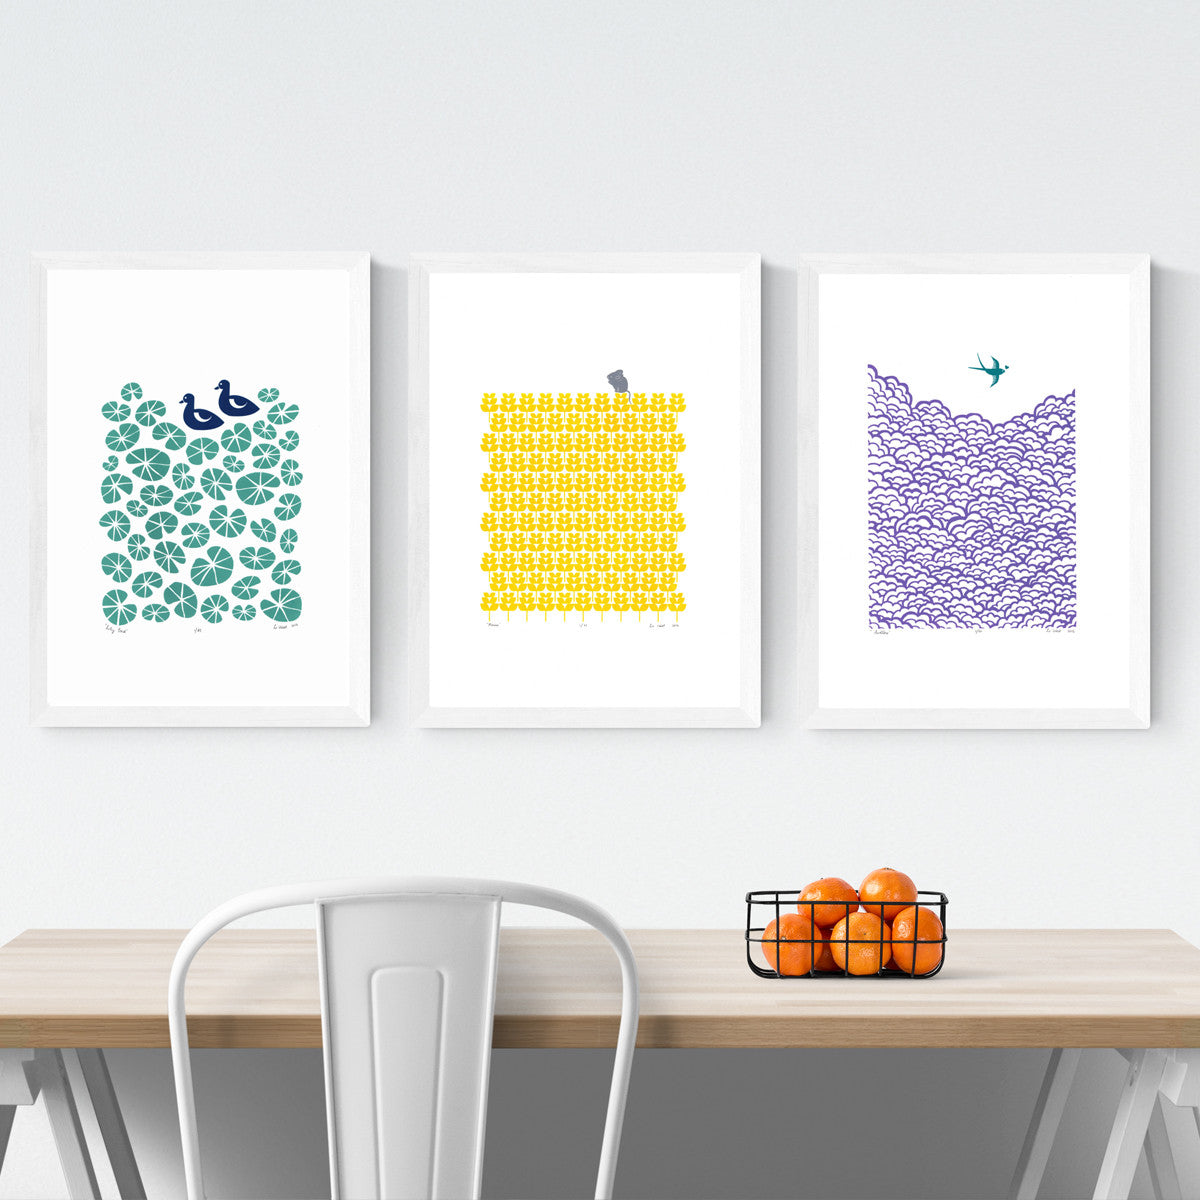 Buy 2 Get 1 Free Special Offer on Limited Edition Screen Prints by Lu West. Lily Pond, Mouse and Swallow prints in White Frames.